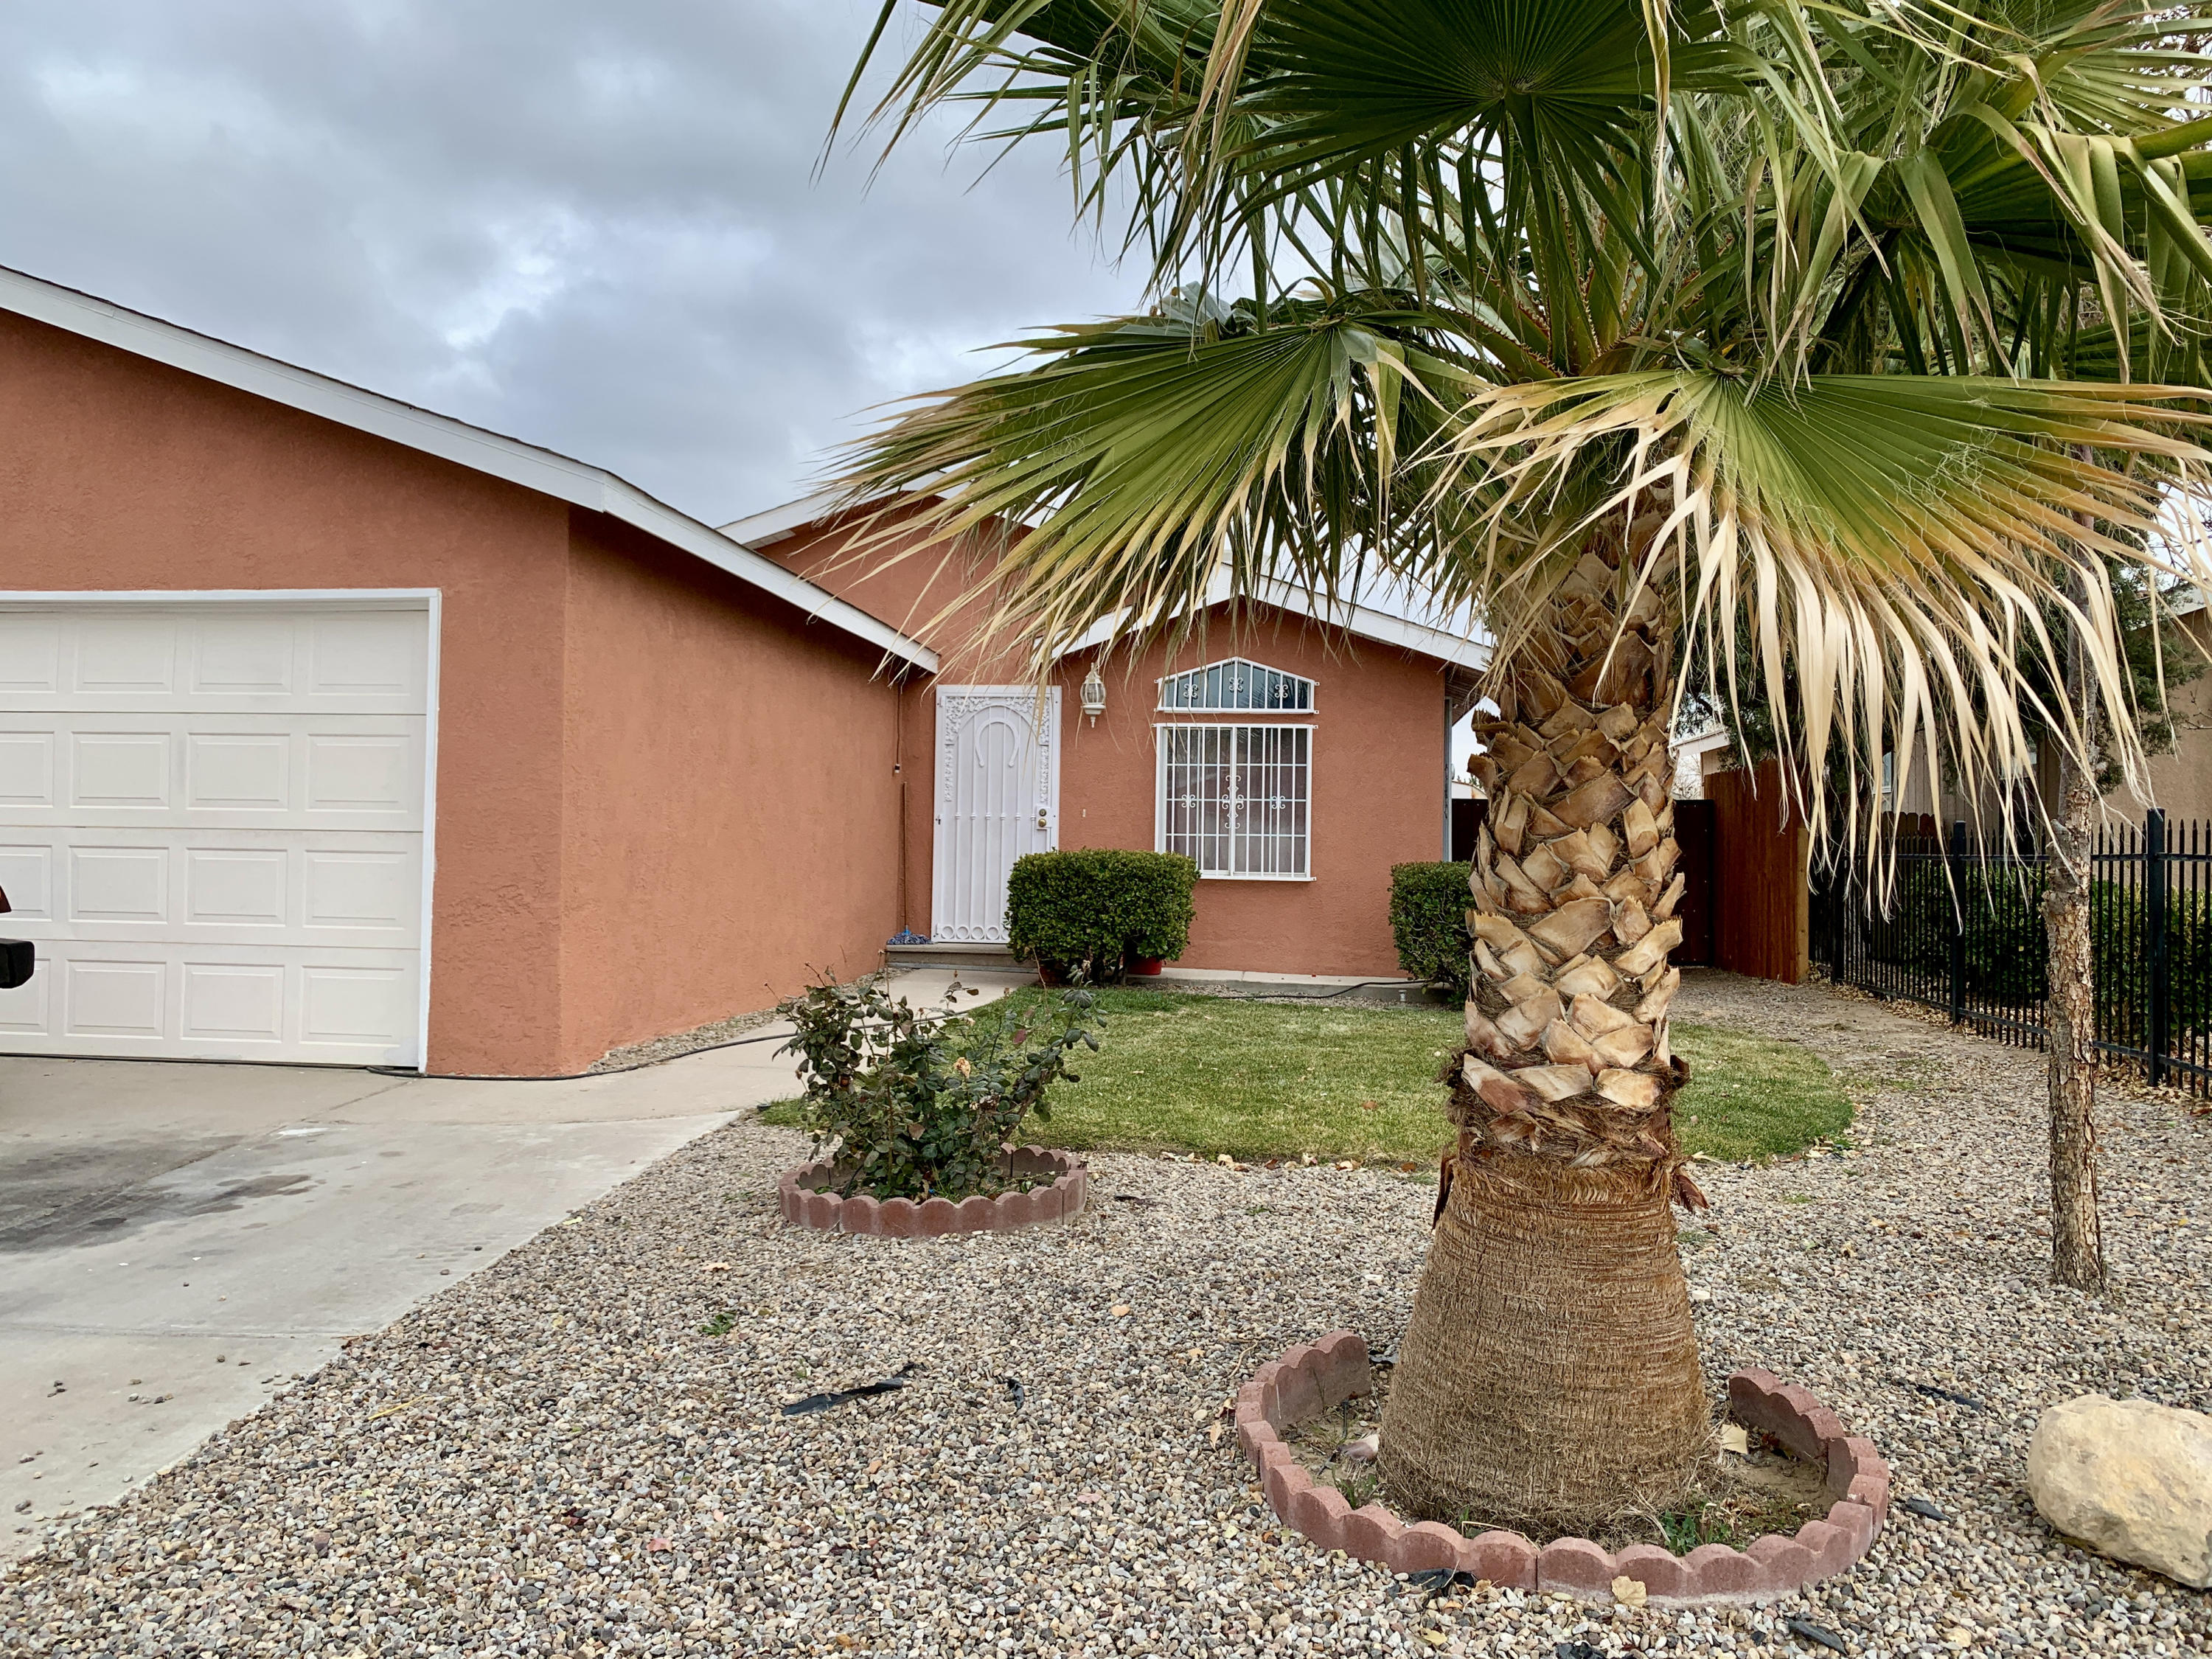 Move in ready Home, 3 bed 2 bath 2 car garage.fresh paint, new door, security bars for added safety. Grass landscaping in the front and back yard. New gate and fence panels.  Virtual tour available online as well as high quality pictures. Priced to sell.